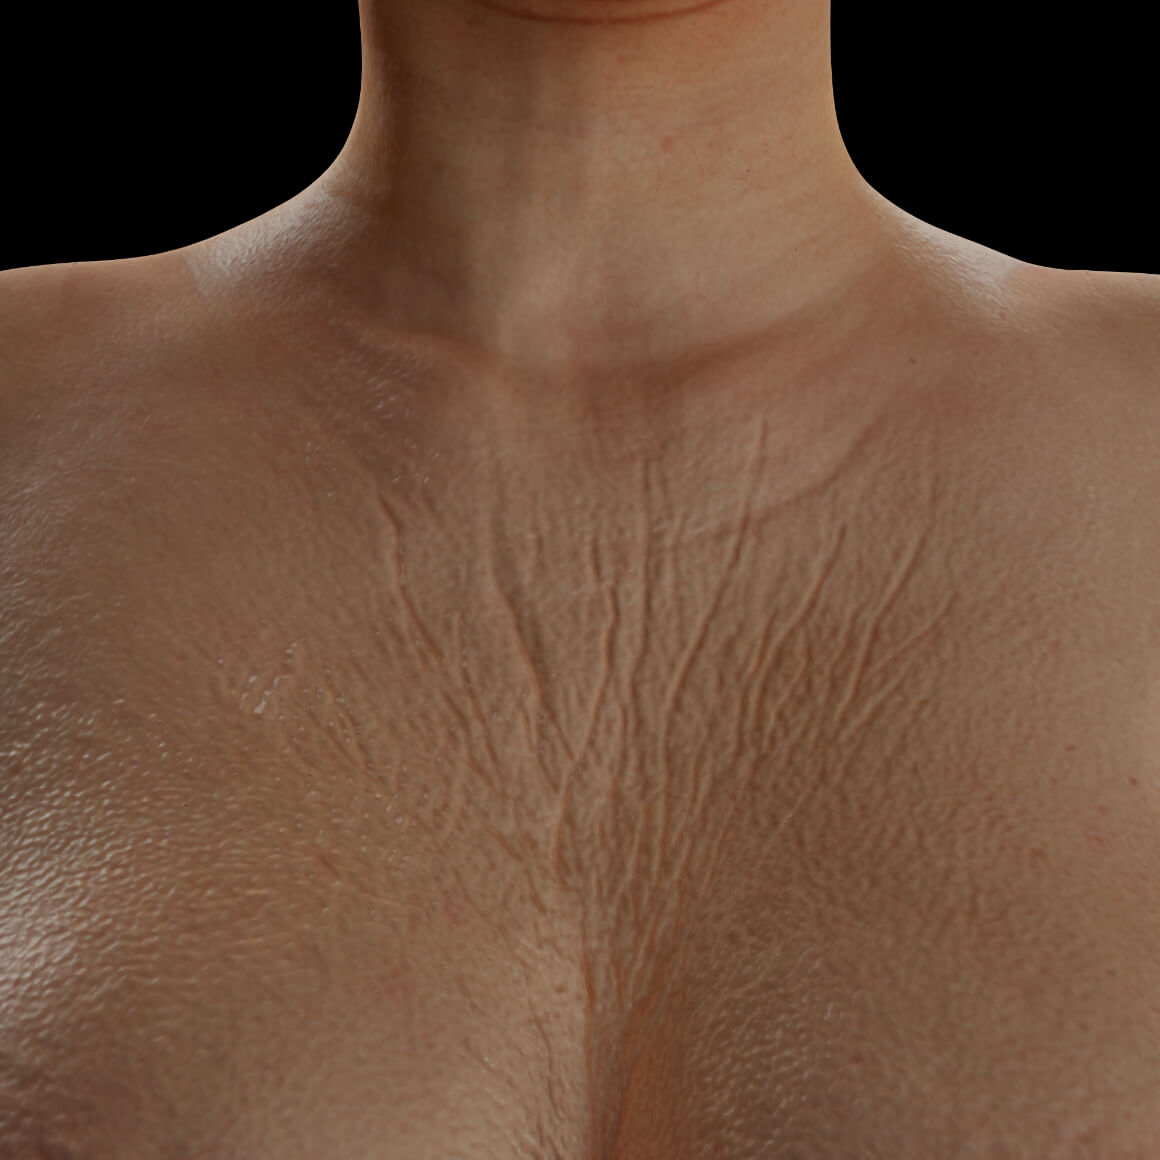 Female patient from Clinique Chloé showing body skin laxity in the décolleté region